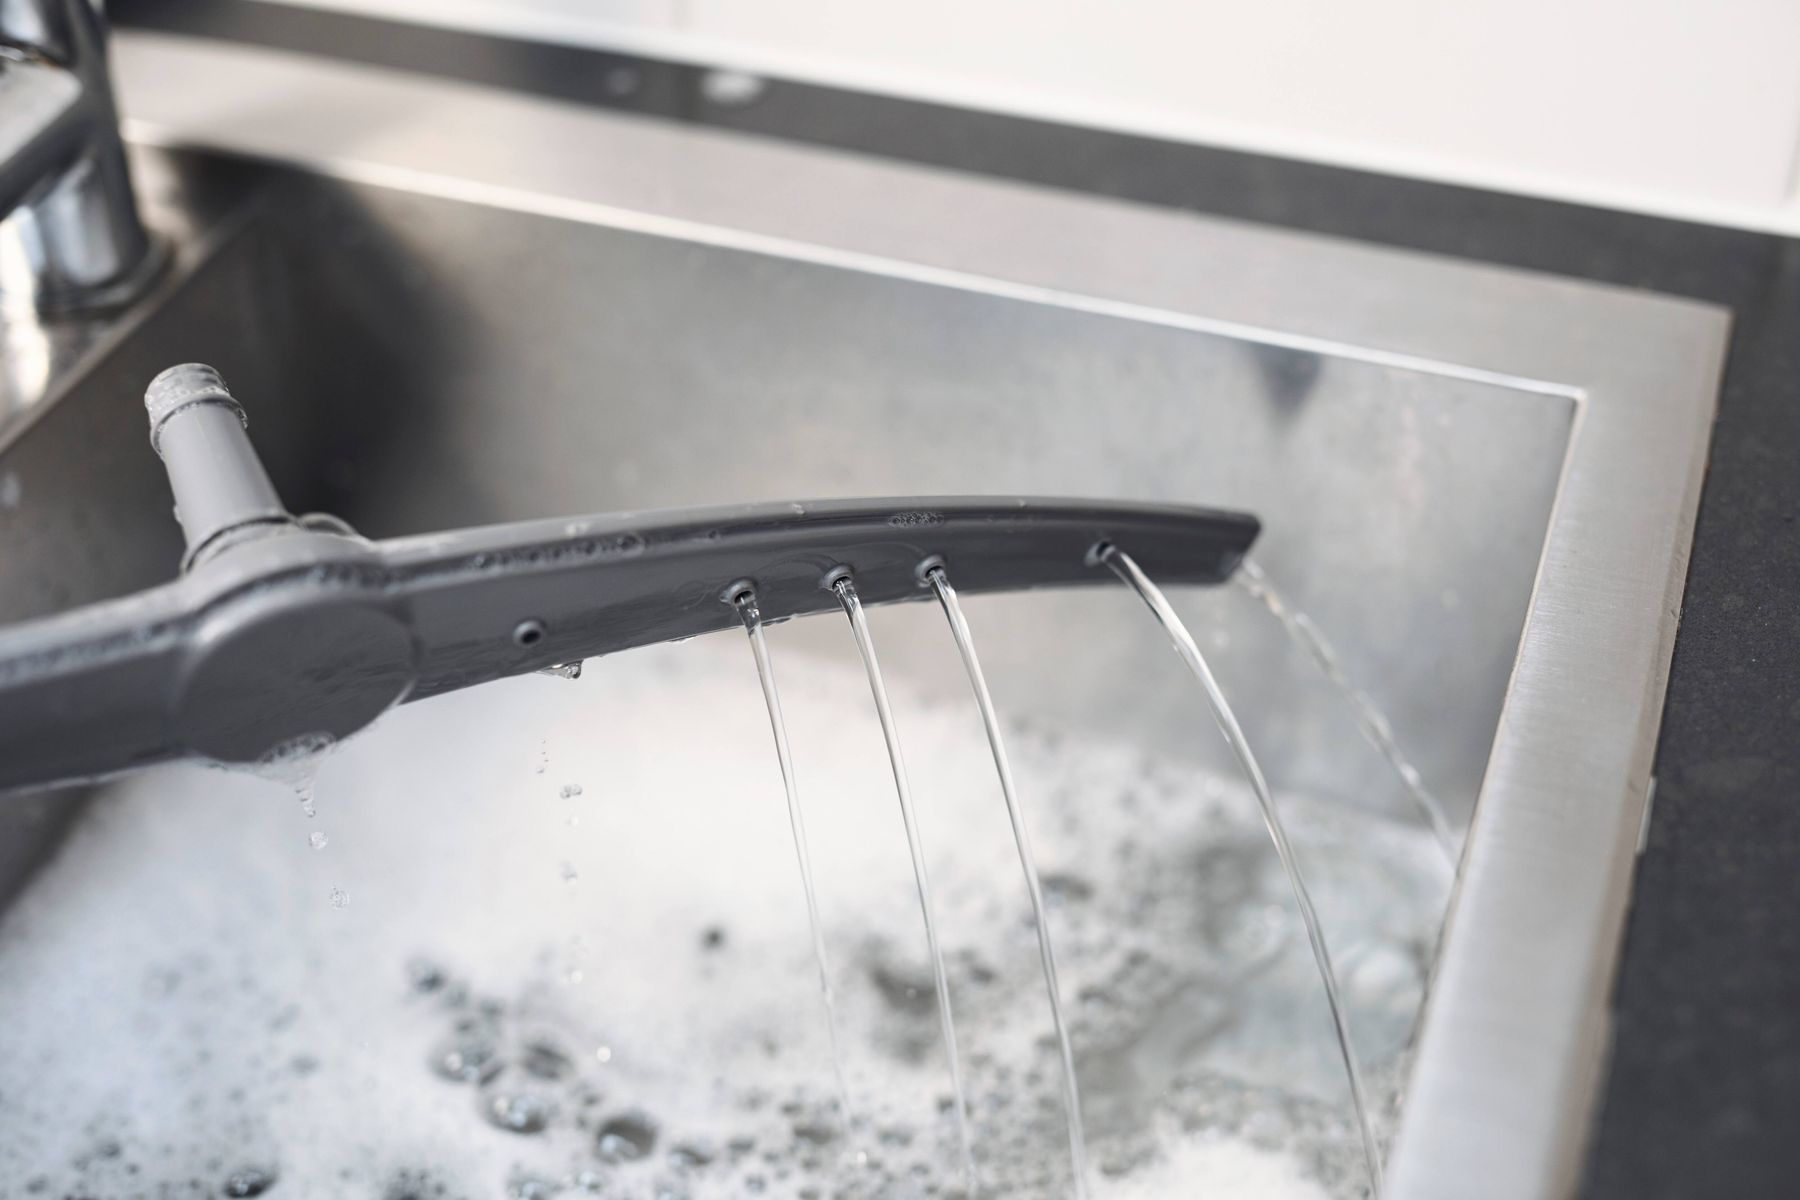 clean a dishwasher in 5 steps